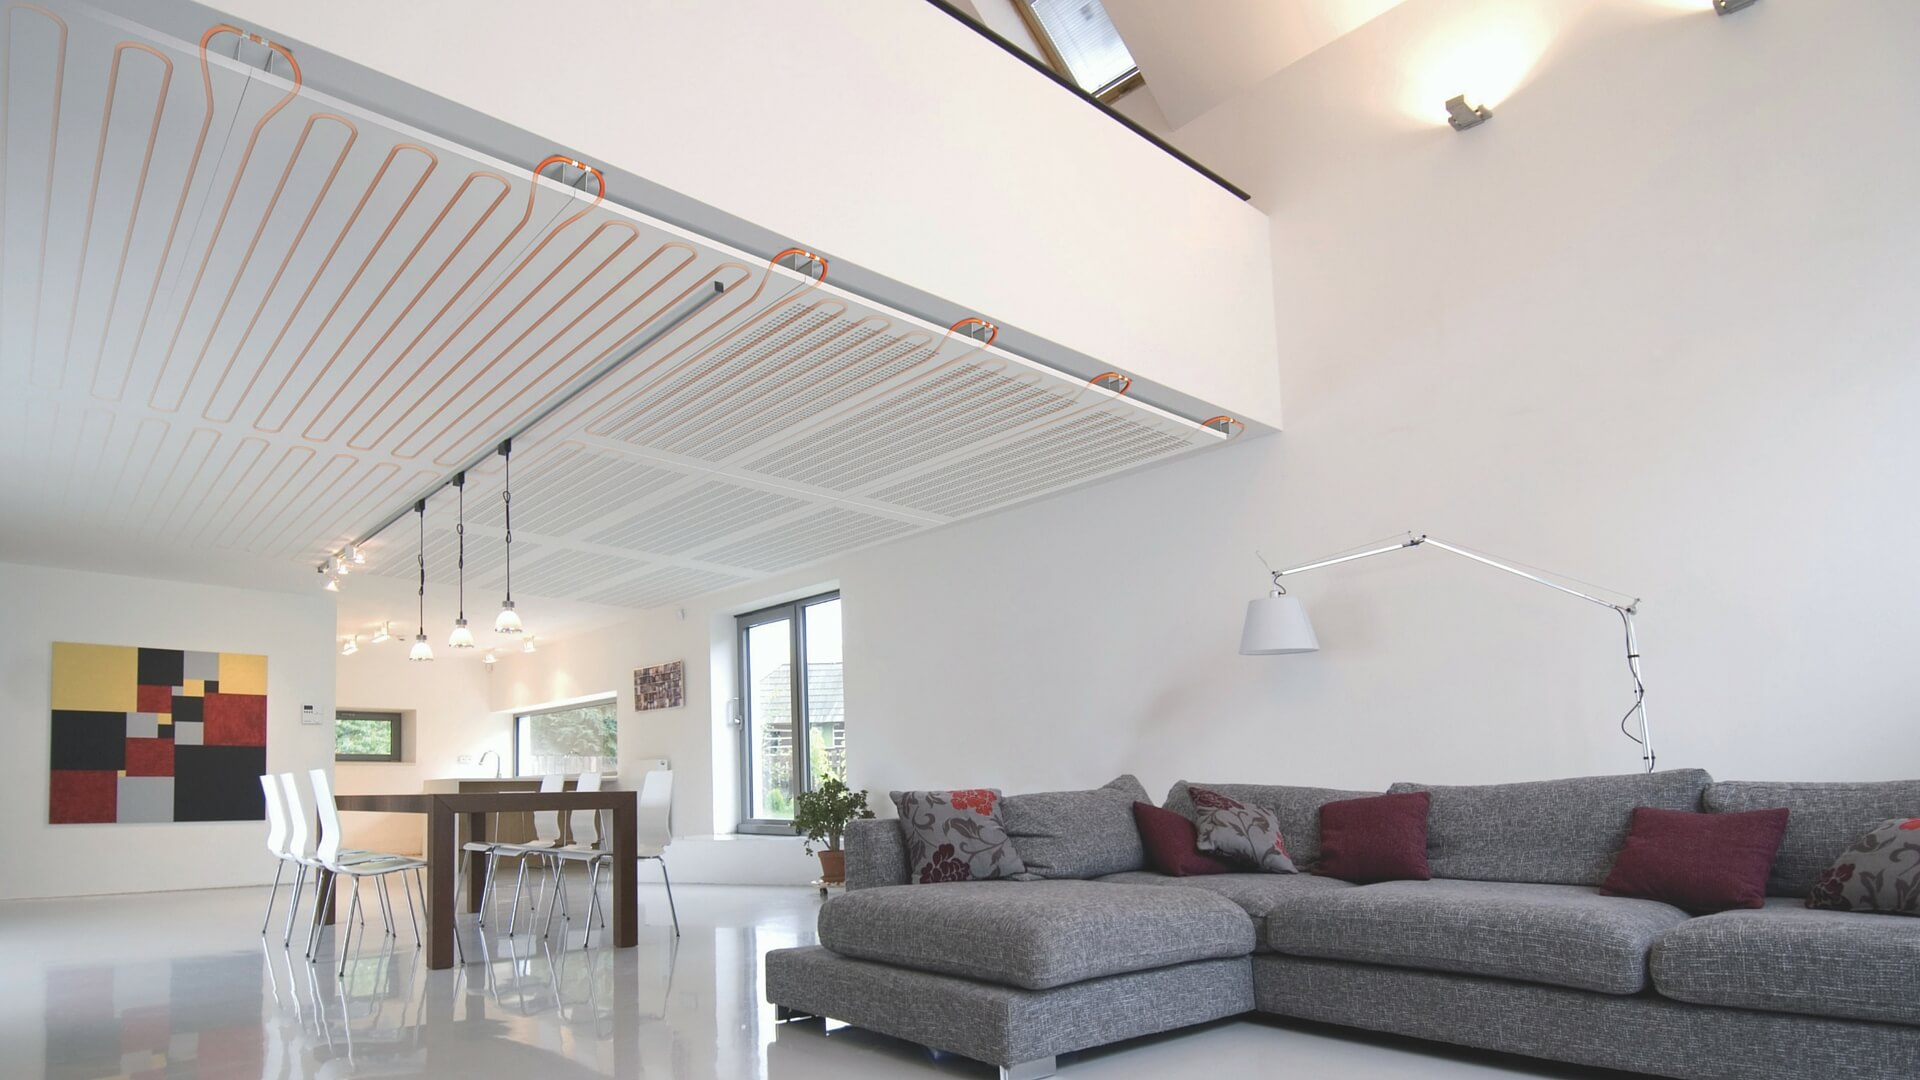 Ceiling Heating / Cooling